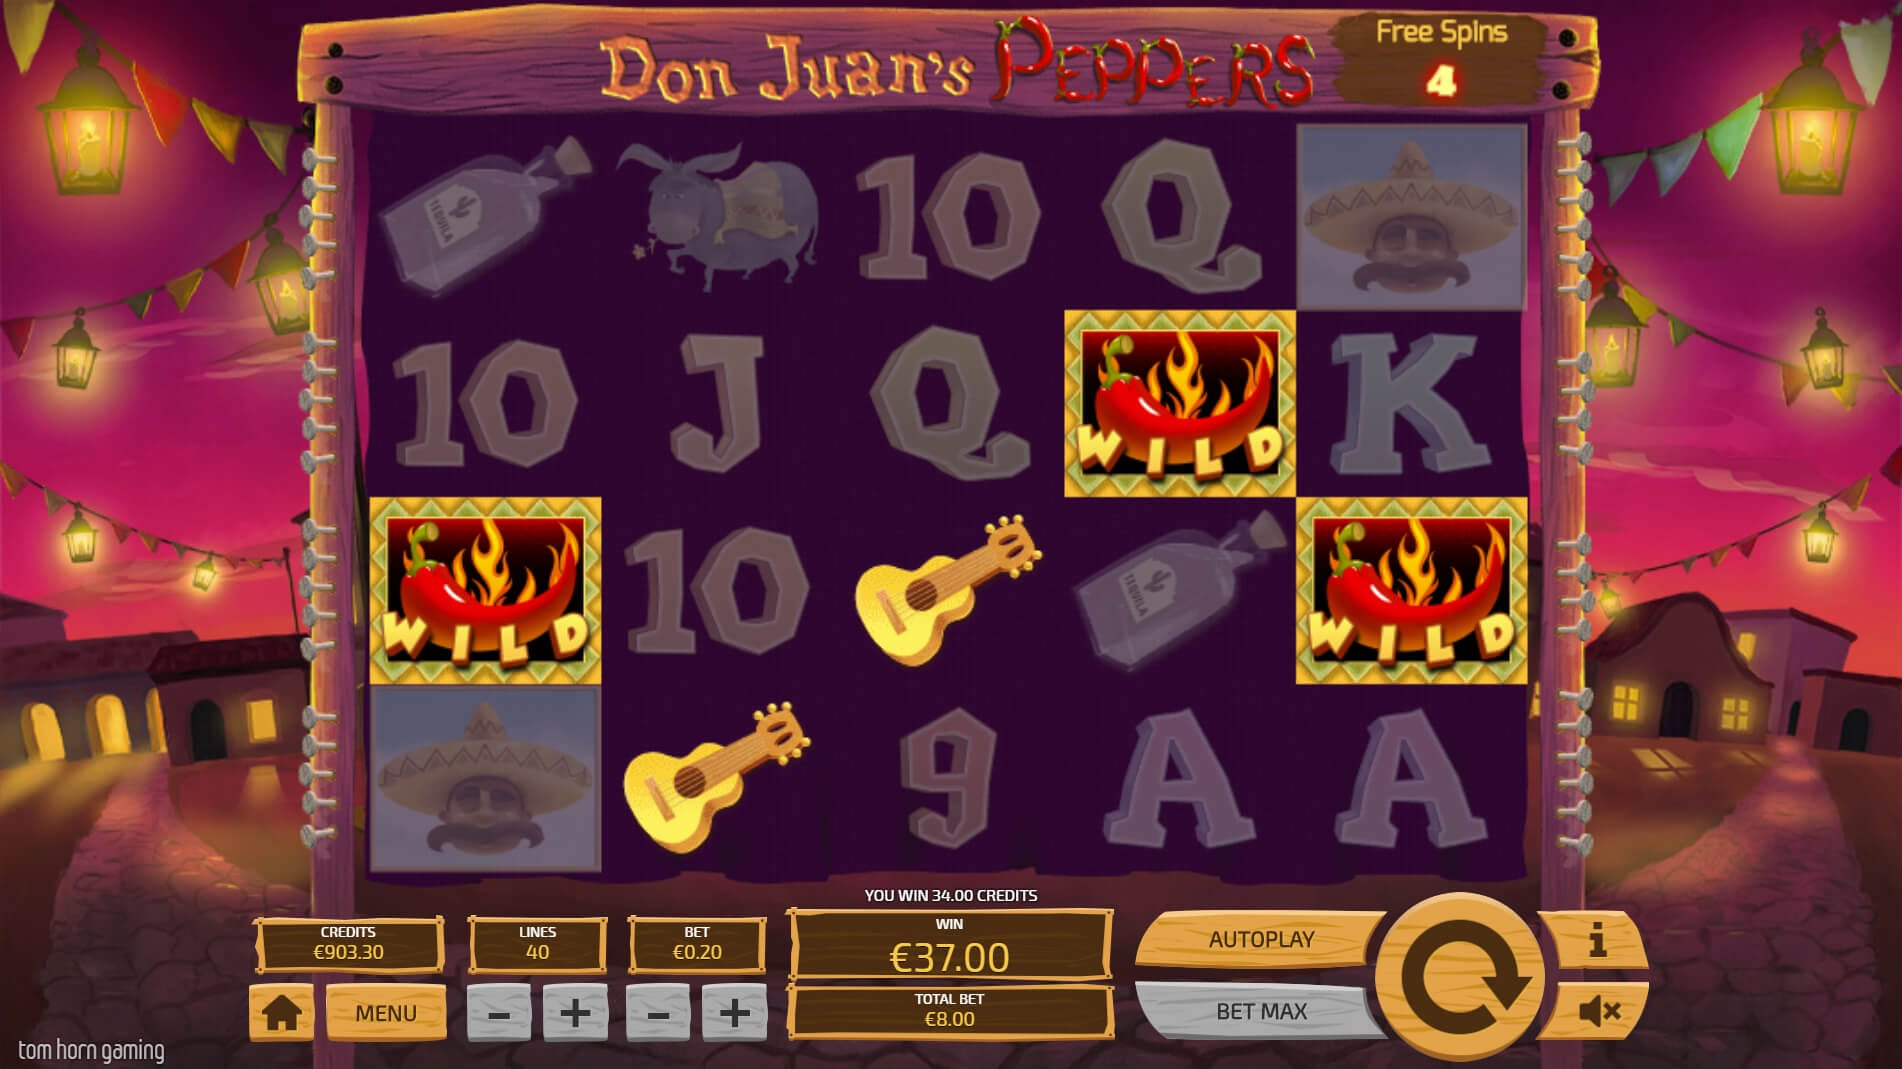 don juans peppers free spins